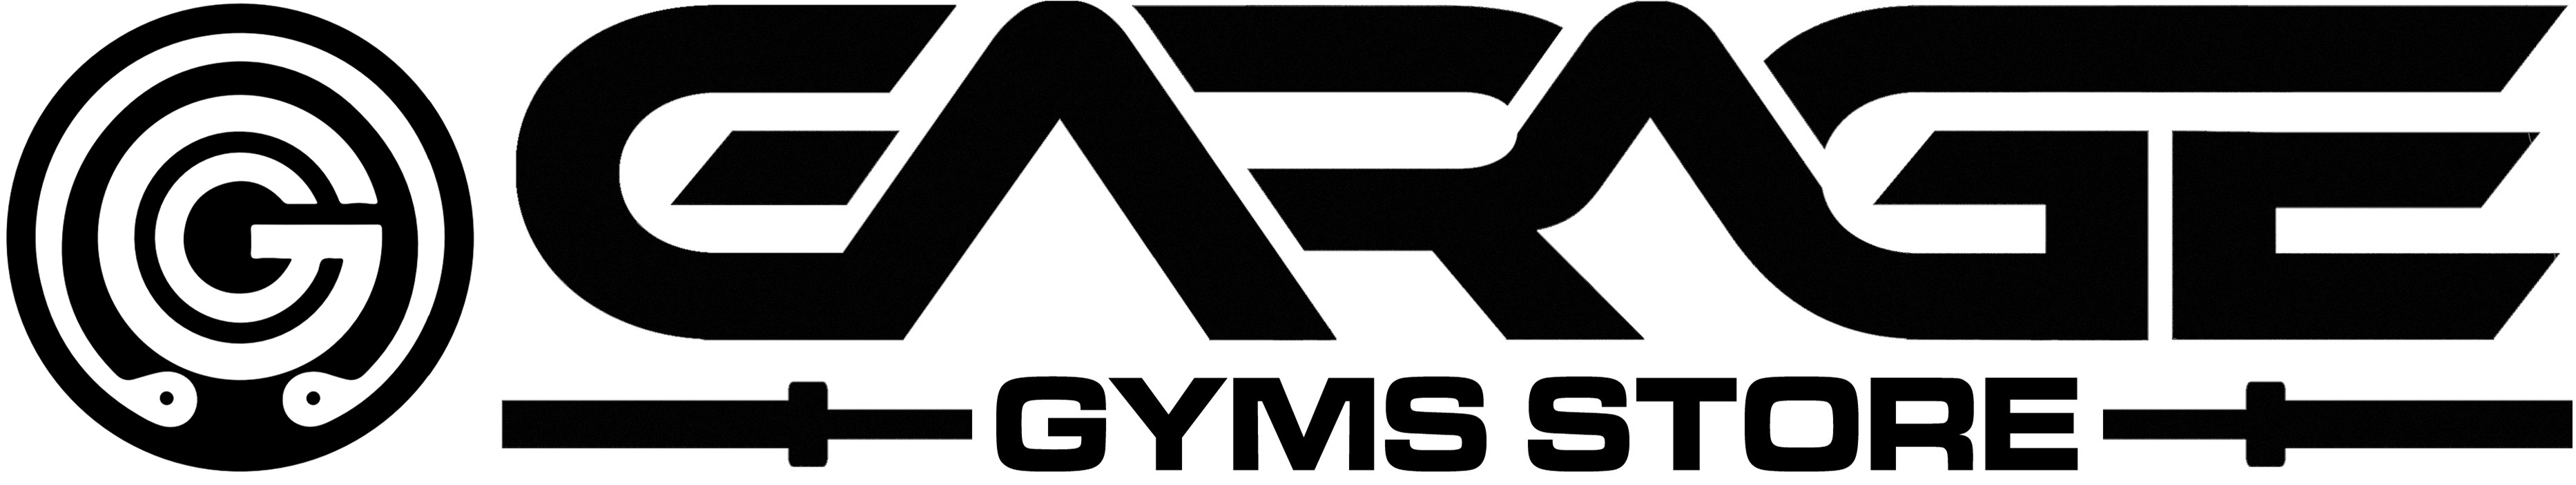 Garage Gyms Store - purchases go towards funding equipment for reviews on garage-gyms.com